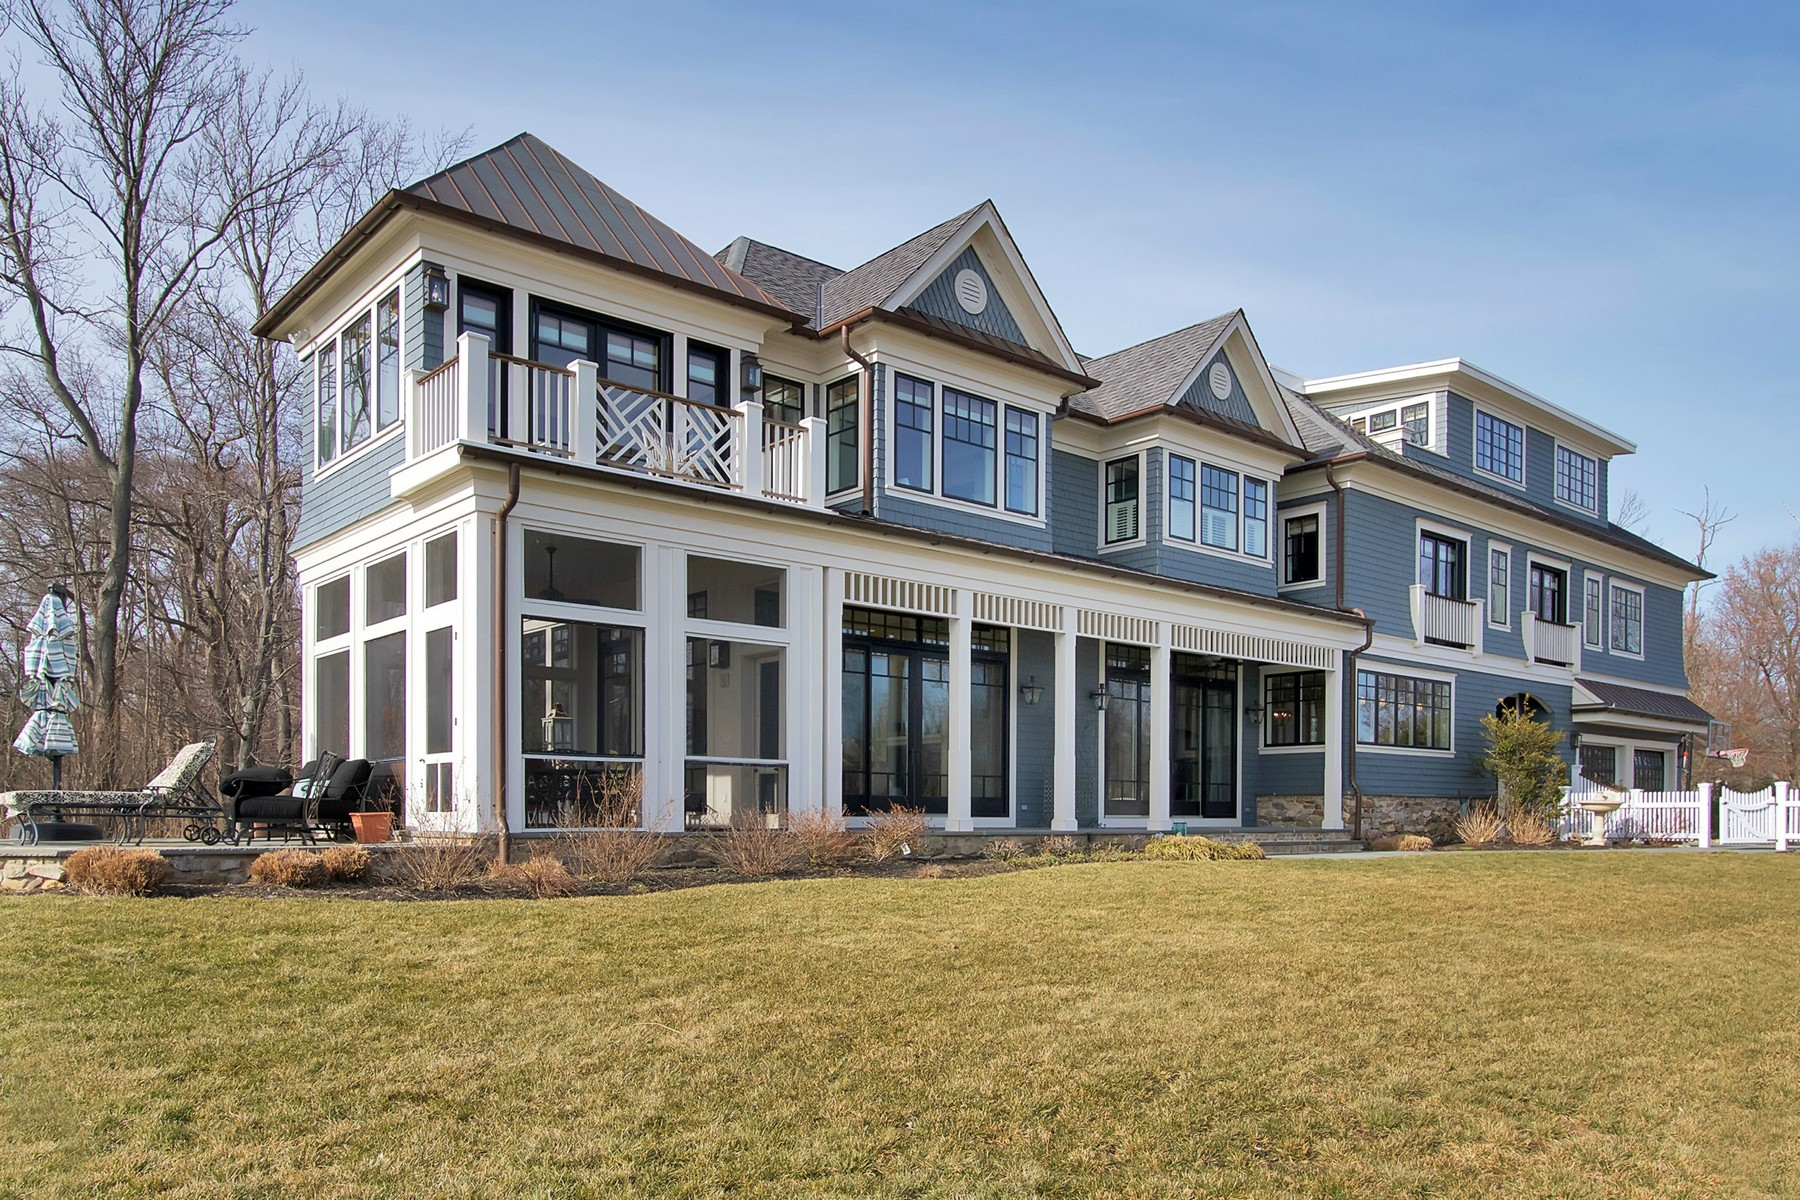 Single Family Home for Sale at Extraordinary Waterfront Home 174 Bingham Ave Rumson, New Jersey, 07760 United States